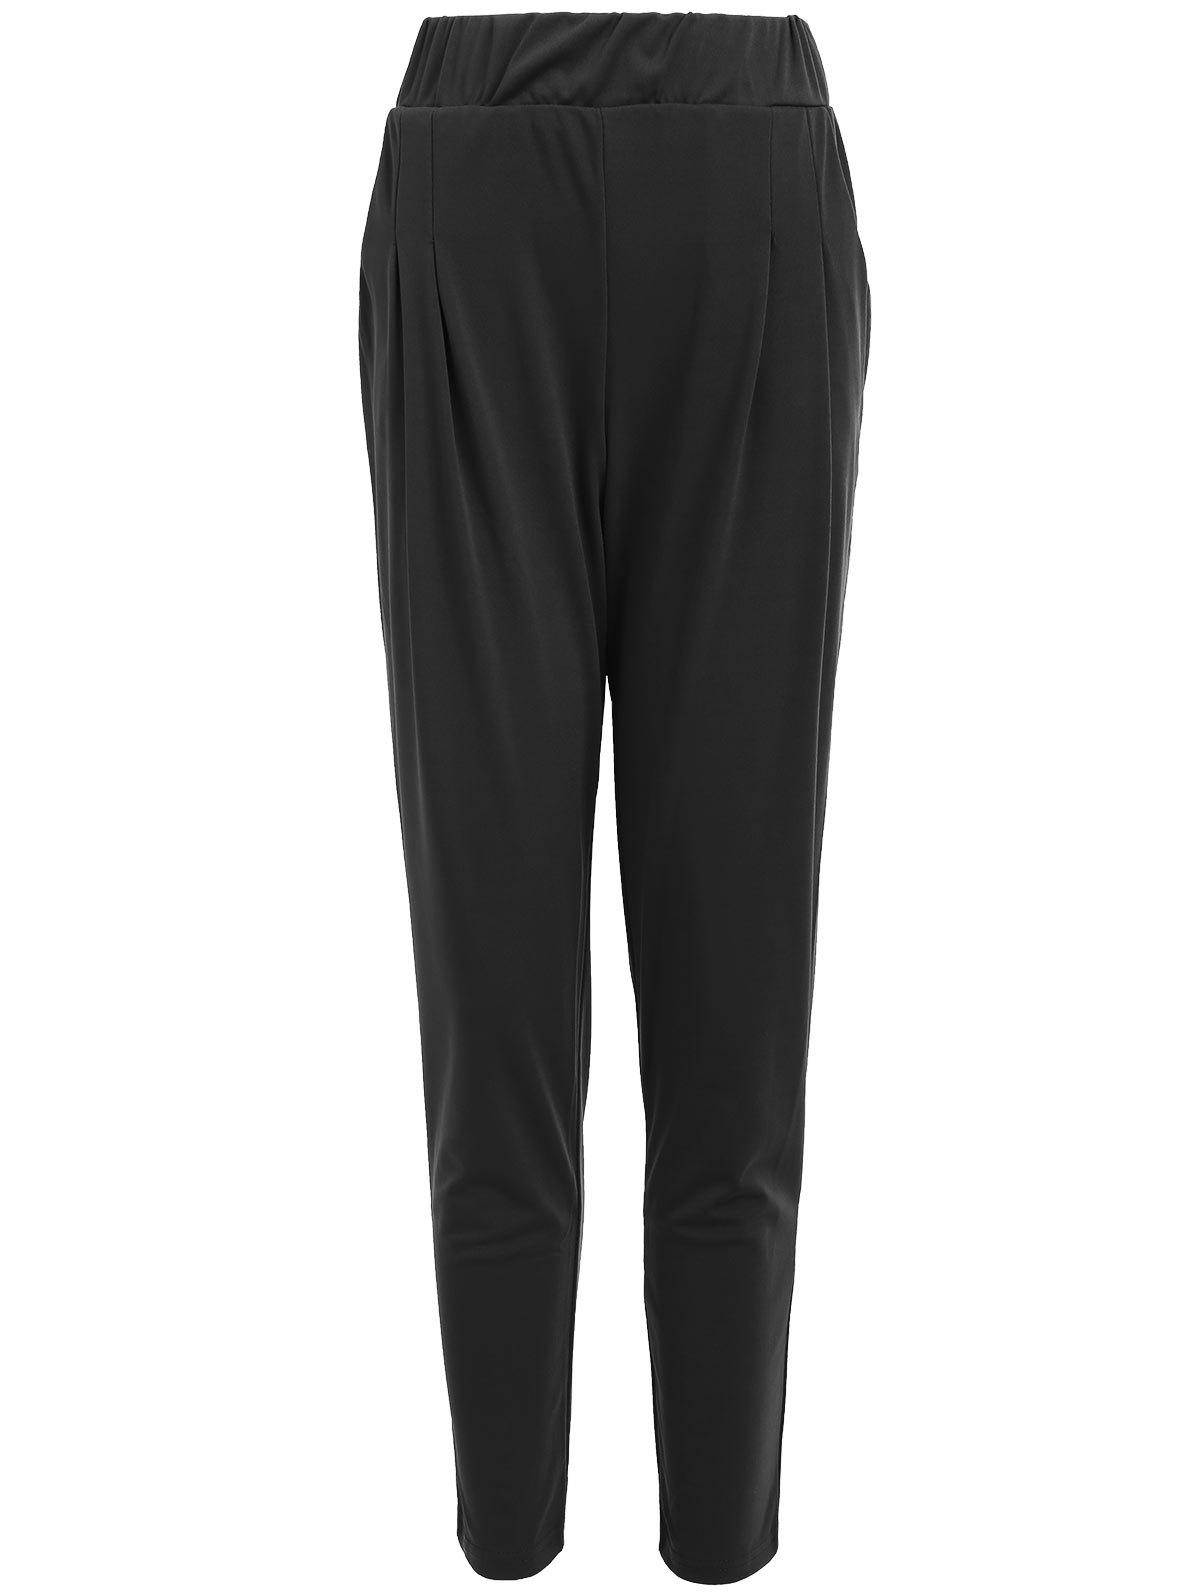 Elastic Waist Ankle Plus Size Pencil PantsWOMEN<br><br>Size: 6XL; Color: BLACK; Style: Casual; Length: Normal; Material: Polyester; Fit Type: Regular; Waist Type: Mid; Closure Type: Elastic Waist; Front Style: Flat; Pattern Type: Solid; Pant Style: Pencil Pants; Elasticity: Micro-elastic; With Belt: No; Weight: 0.3300kg; Package Contents: 1 x Pants;